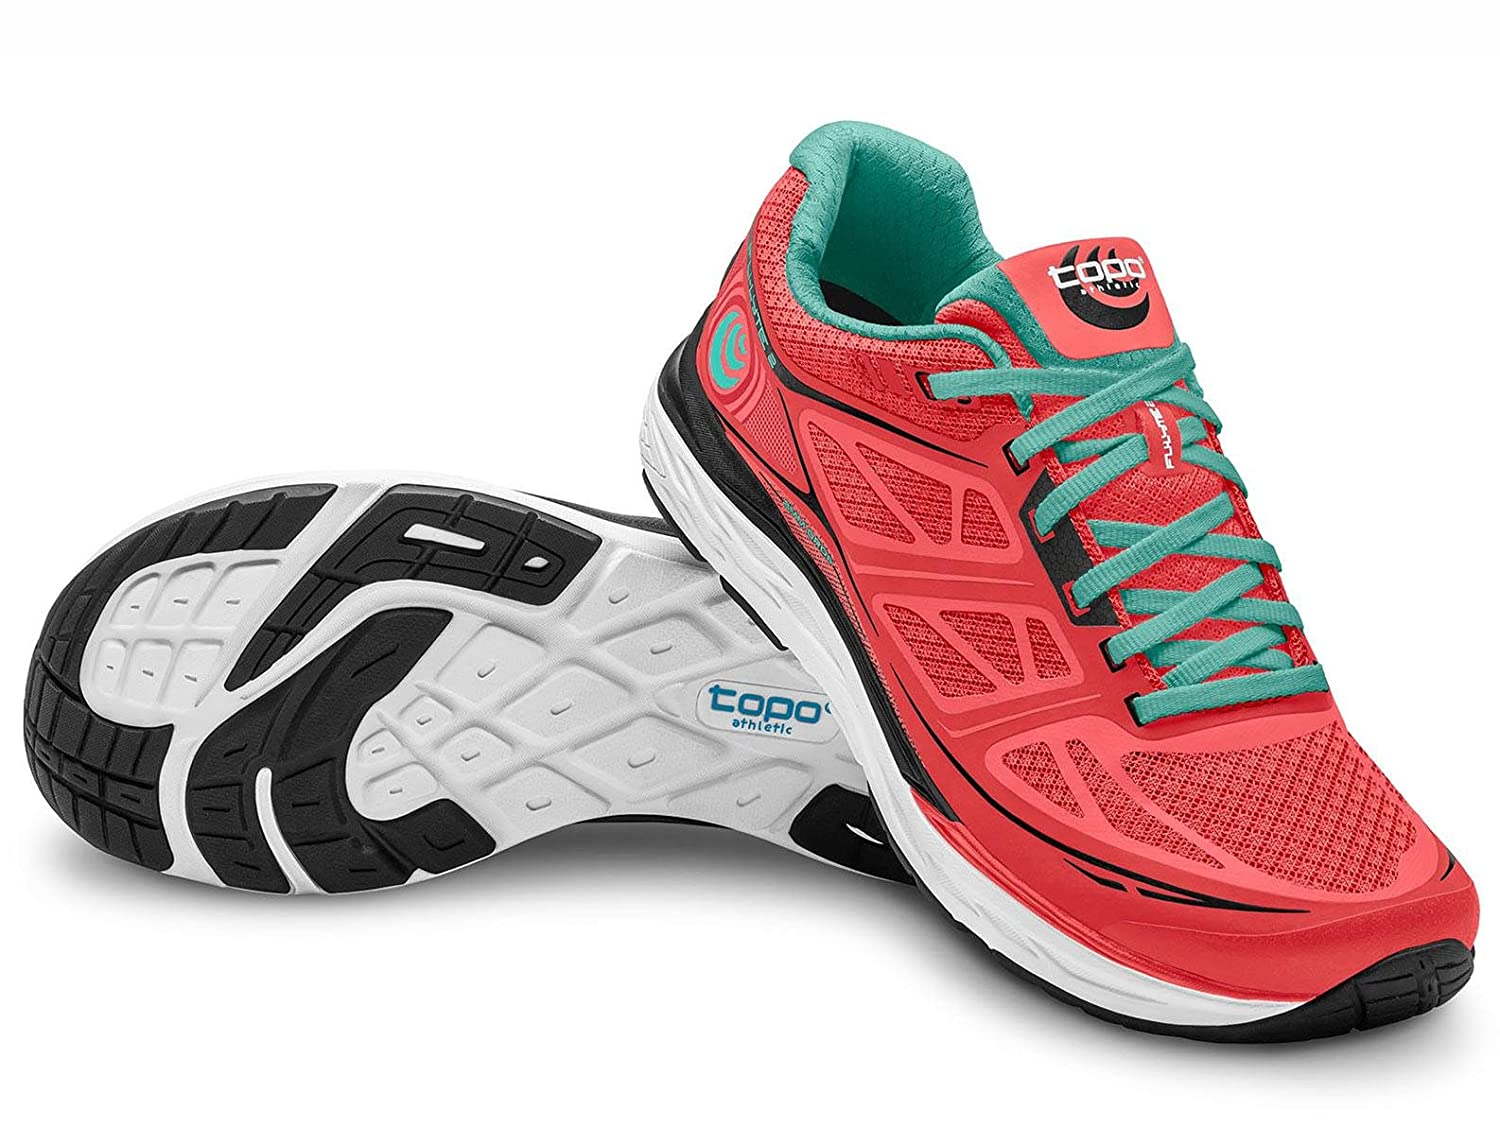 Topo Athletic Fli-Lyte 2 Running Shoes - Women's B071XNBX4M 6.5 B(M) US|Coral/Aqua